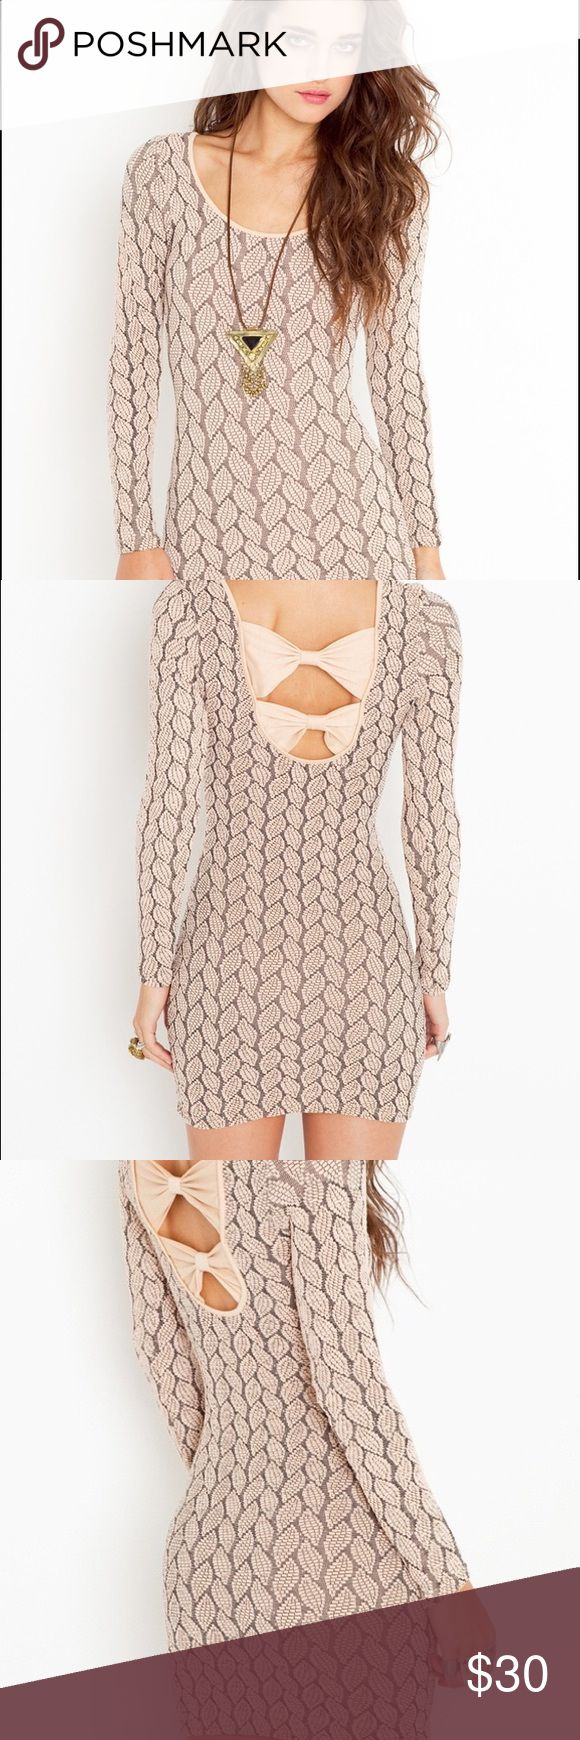 Nasty Gal Bodycon Bow Dress Form fitting gorgeous nude dress from nasty gal.  Perfect for New Year's Eve or going out with friends. In perfect condition. Worn twice Nasty Gal Dresses Mini